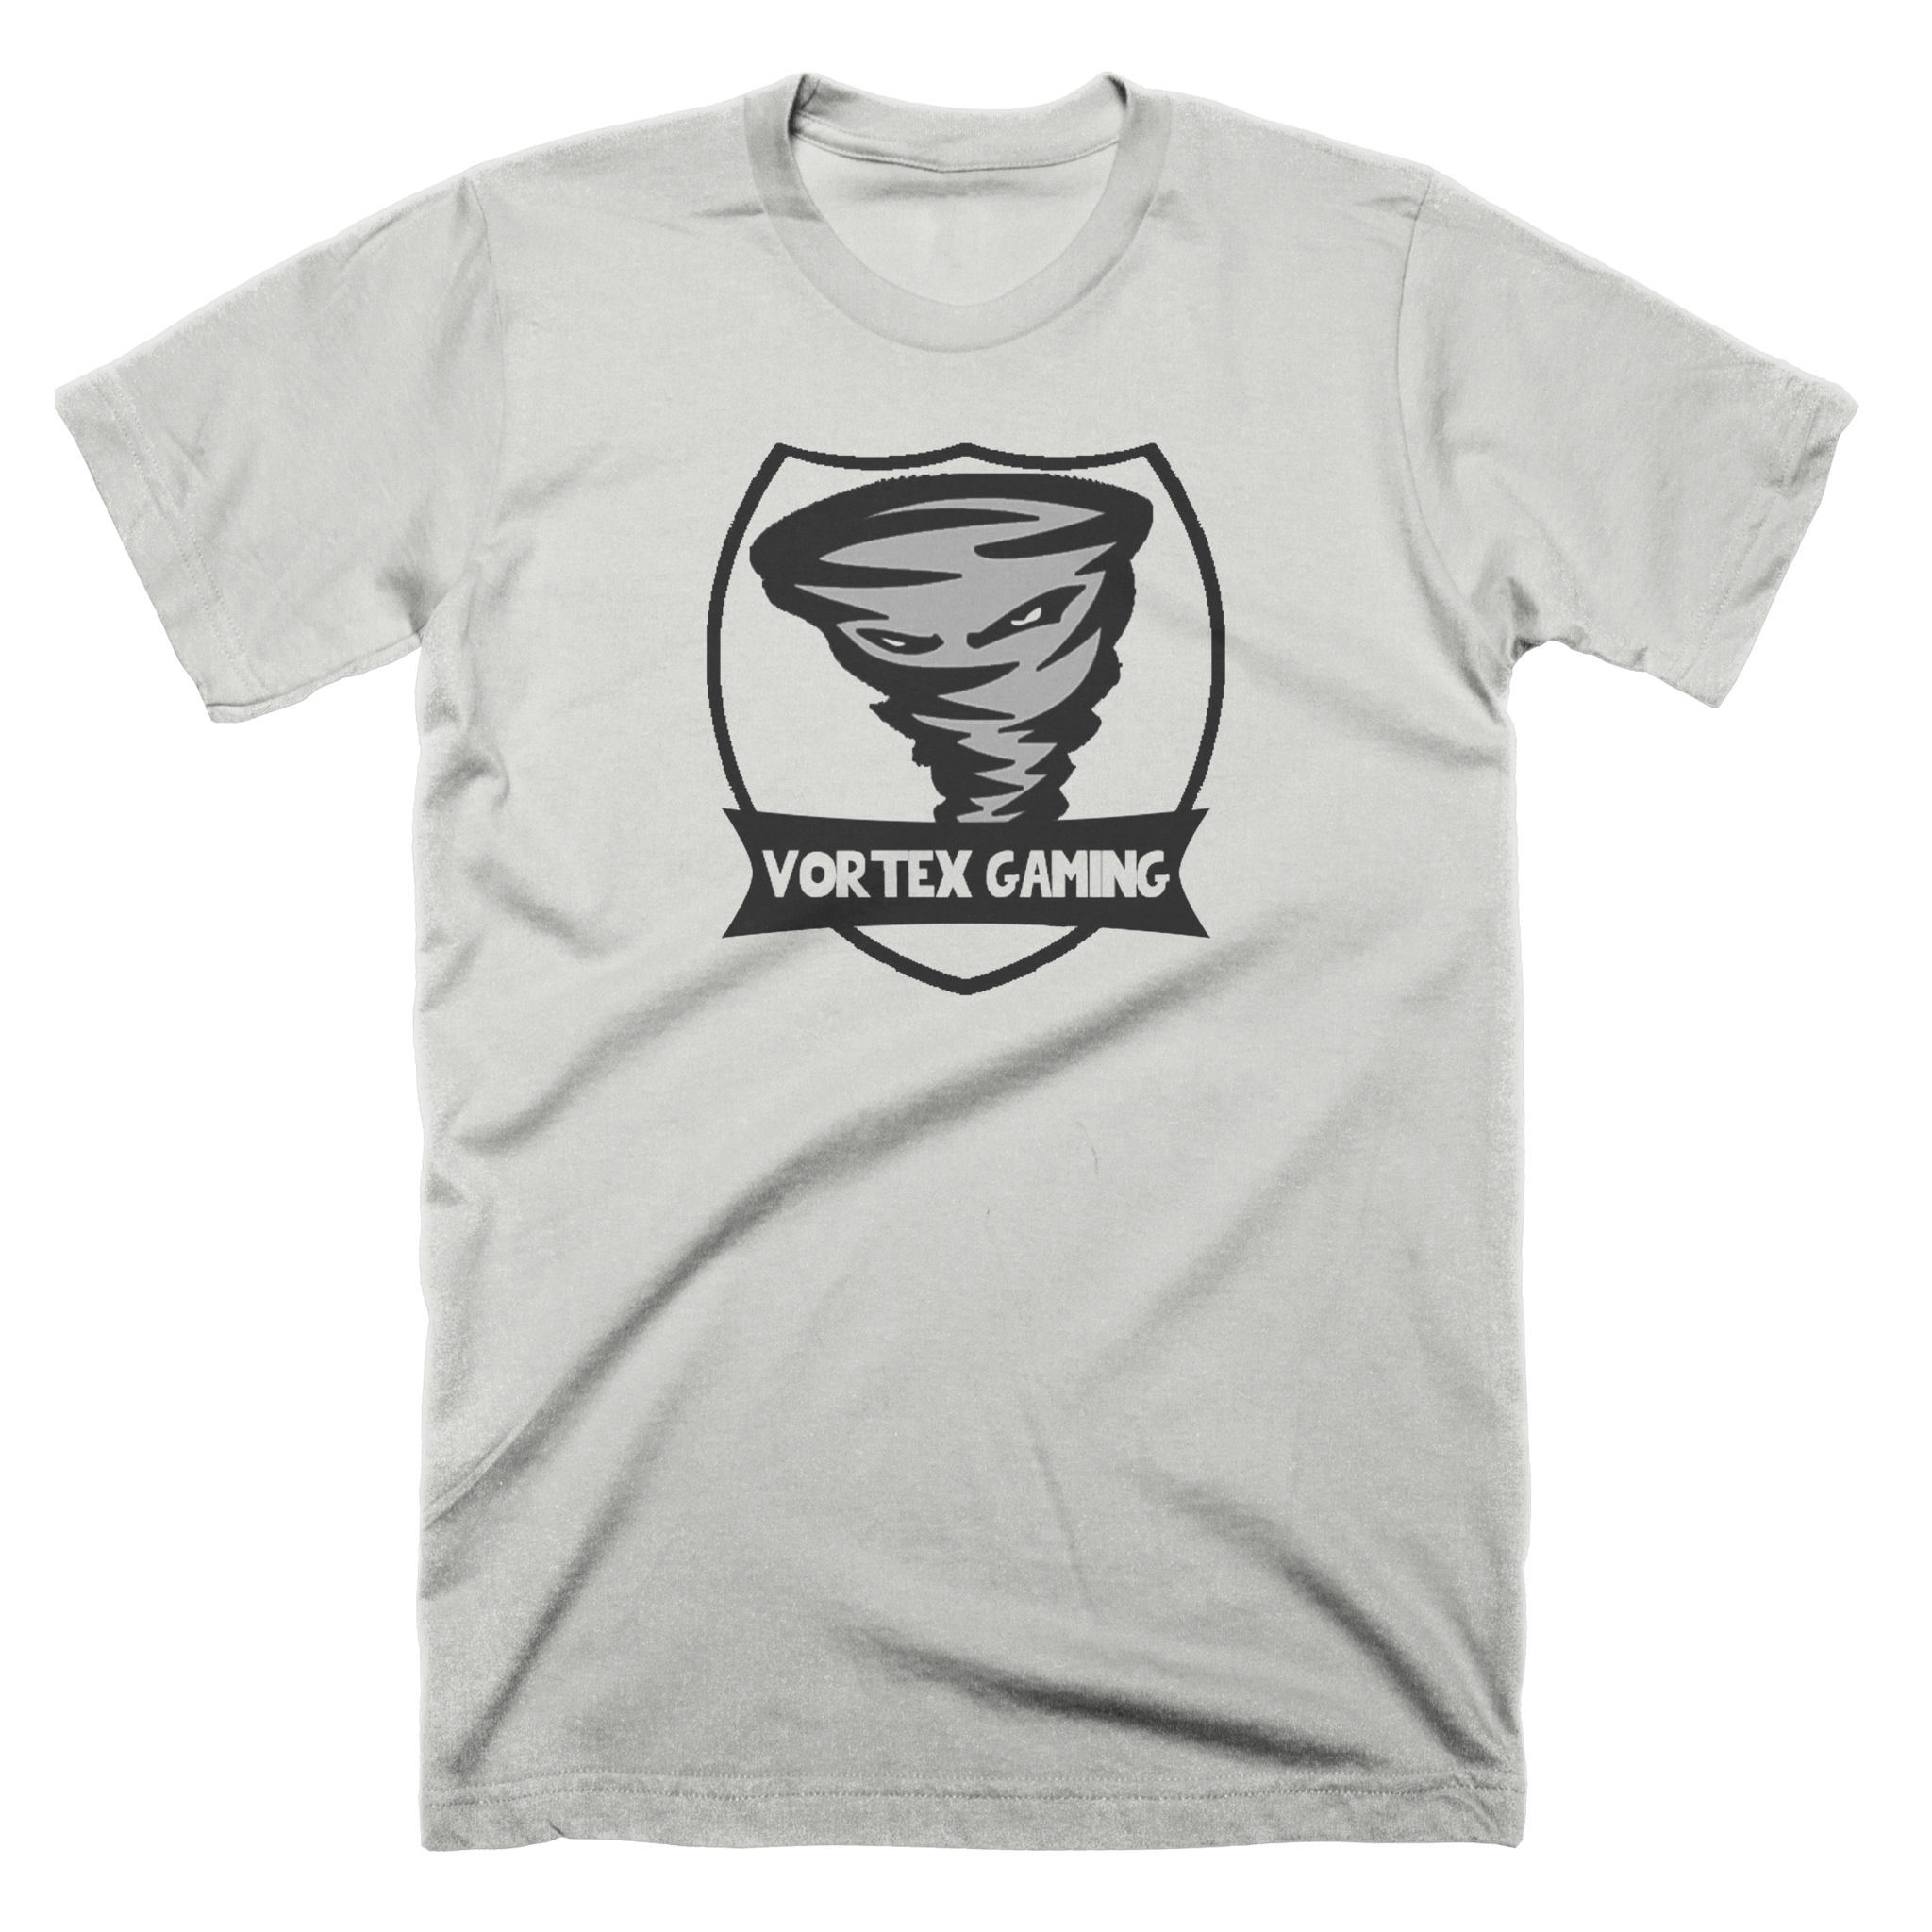 Vortex Gaming Black Logo T-Shirt